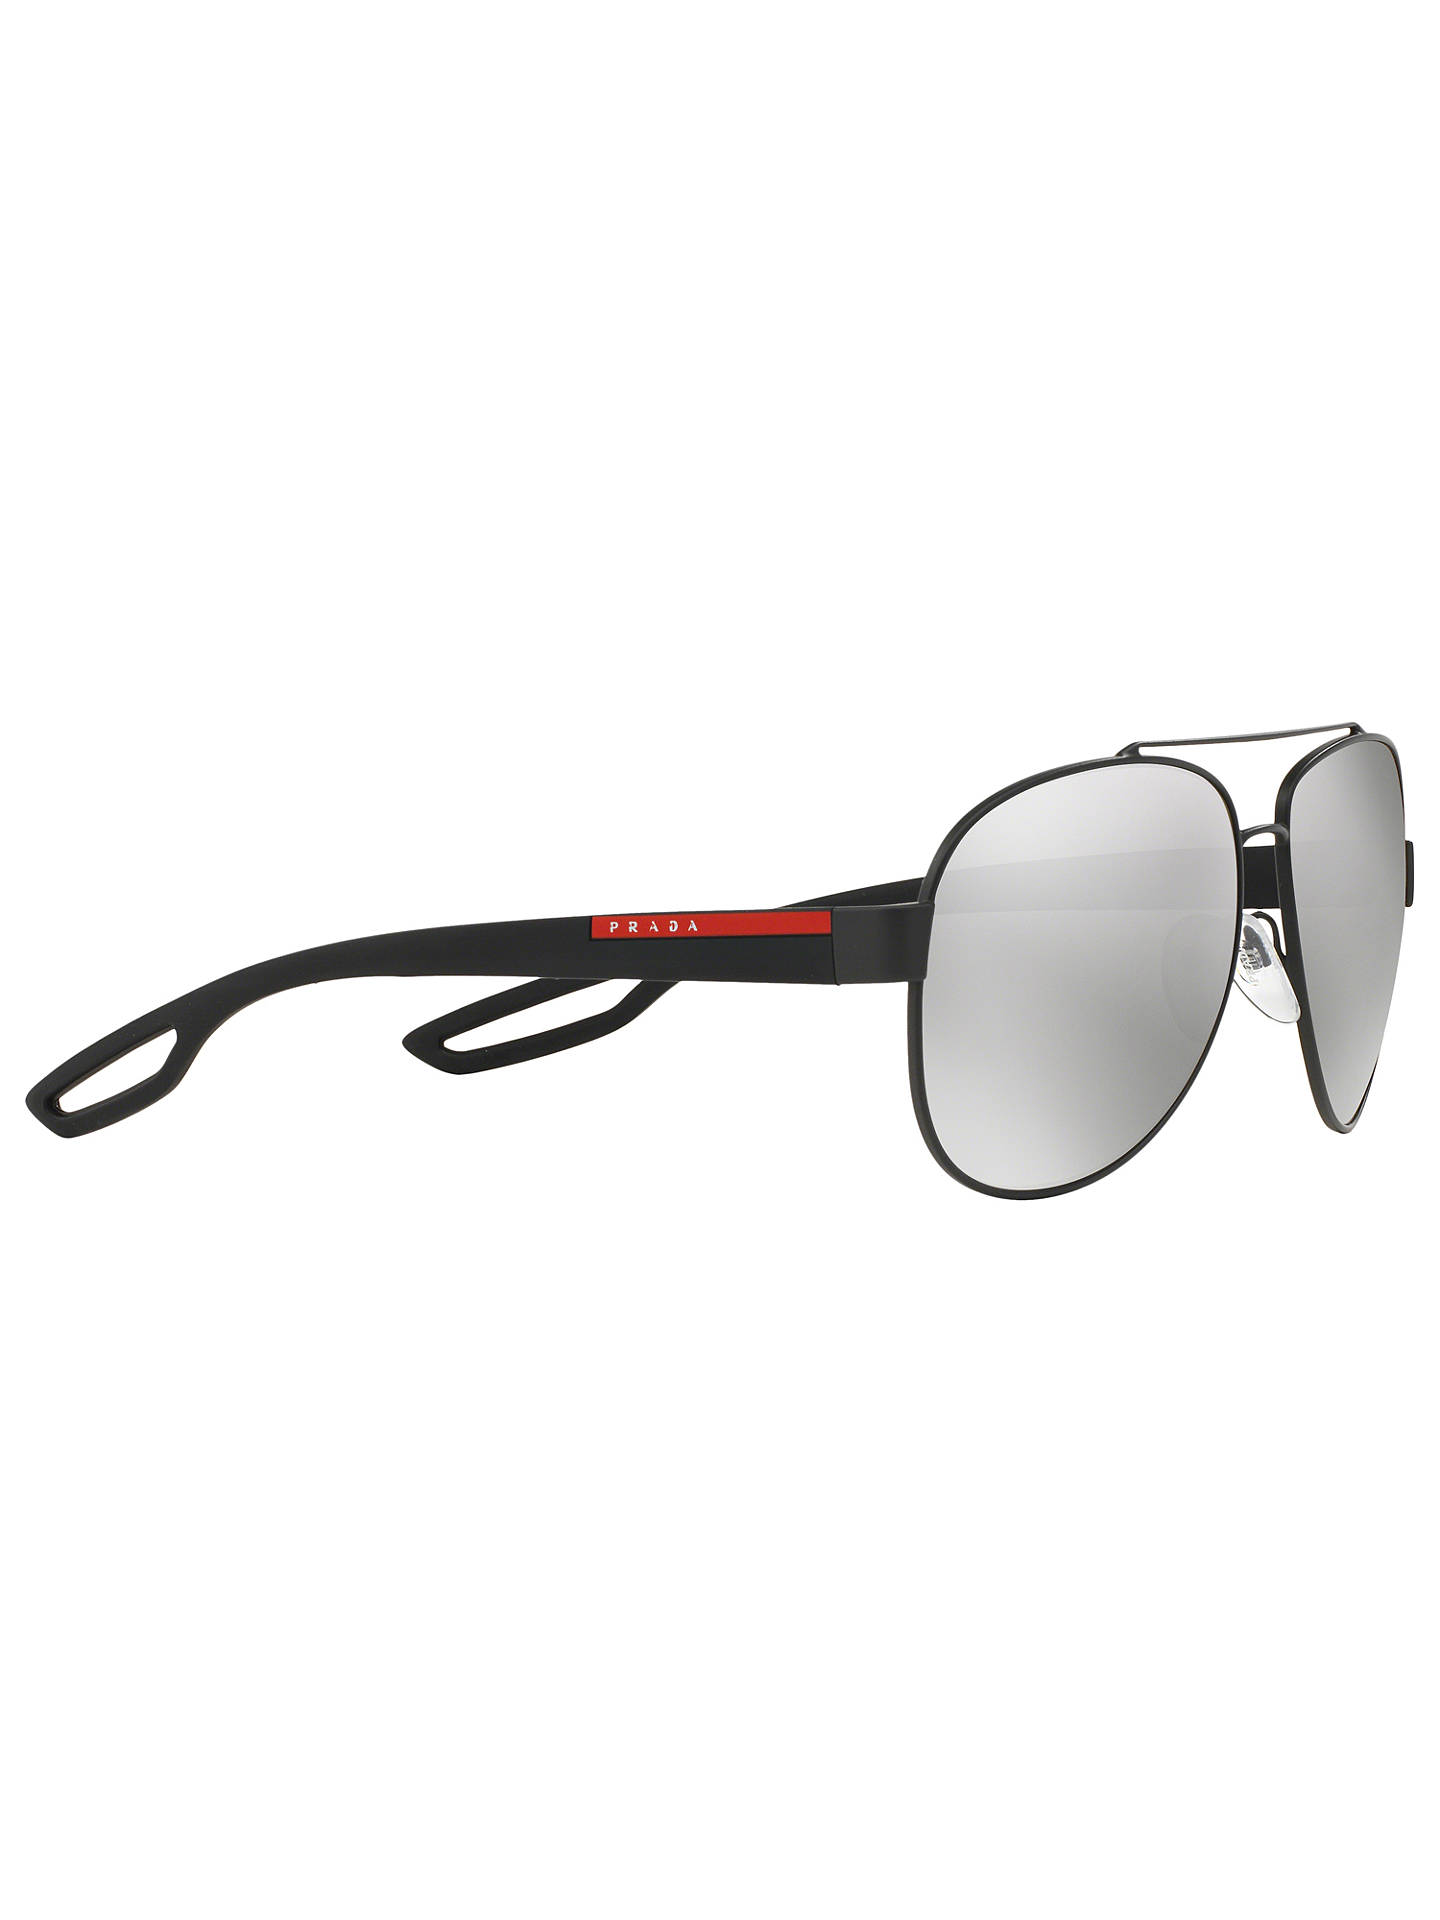 Buy Prada Linea Rossa PS55QS Aviator Polarised Sunglasses, Black Online at johnlewis.com